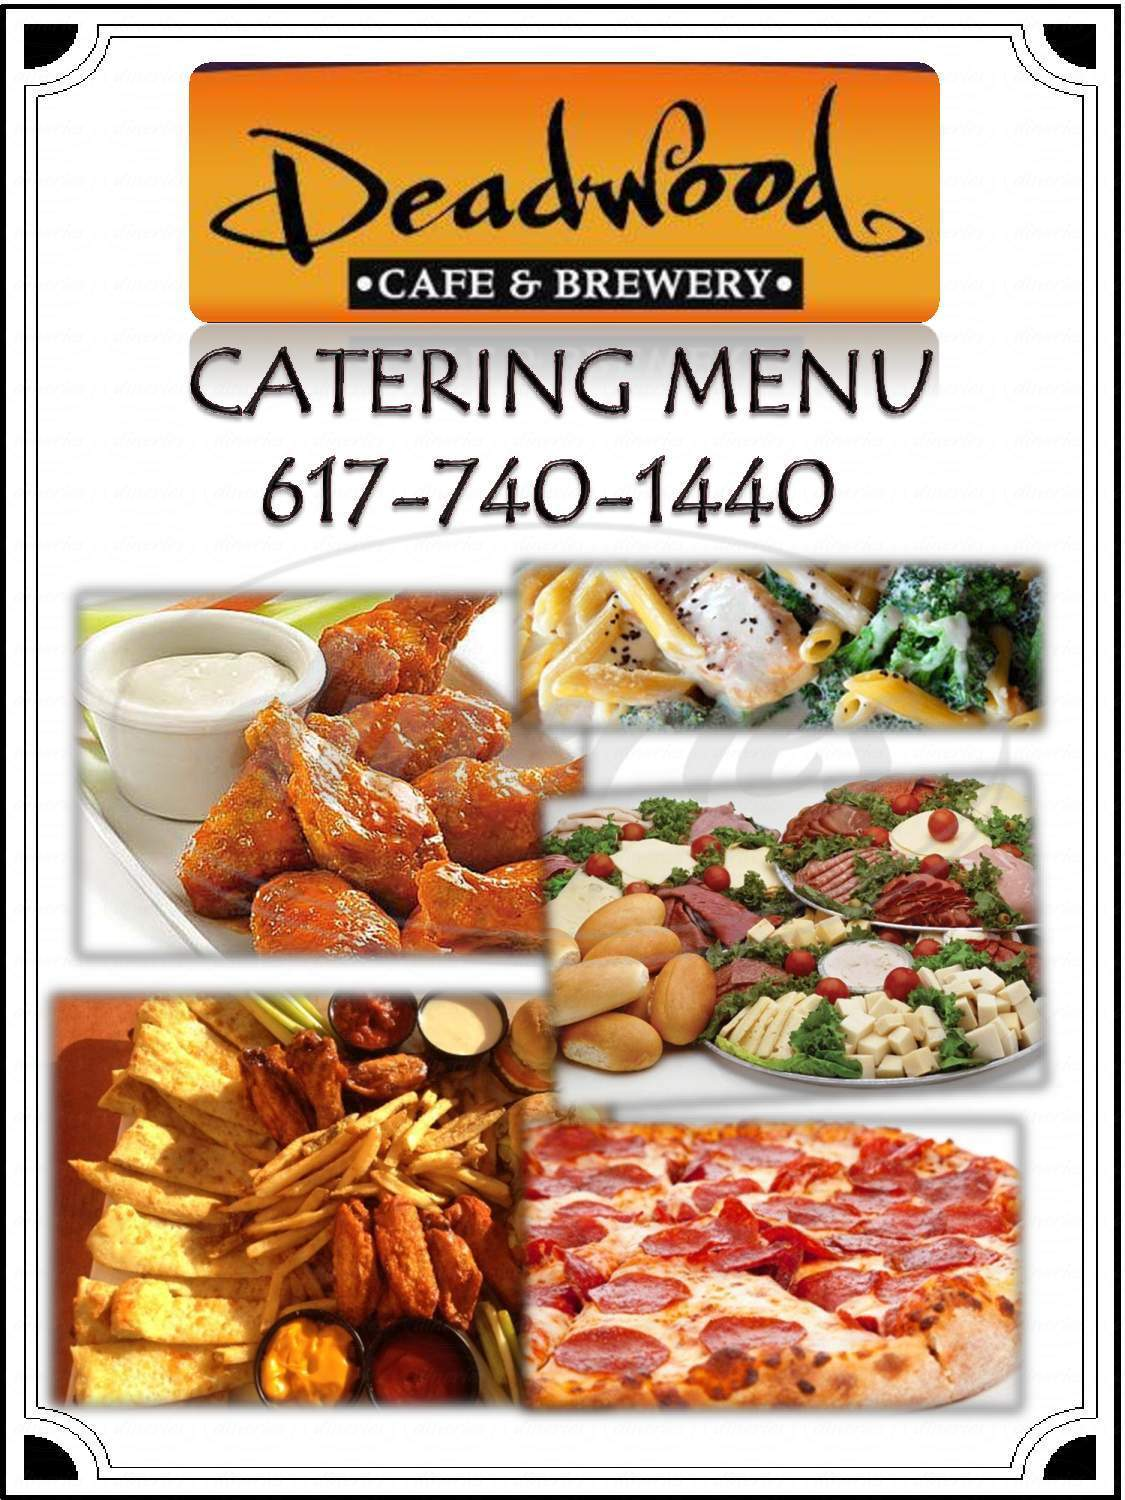 menu for Deadwood Brewery